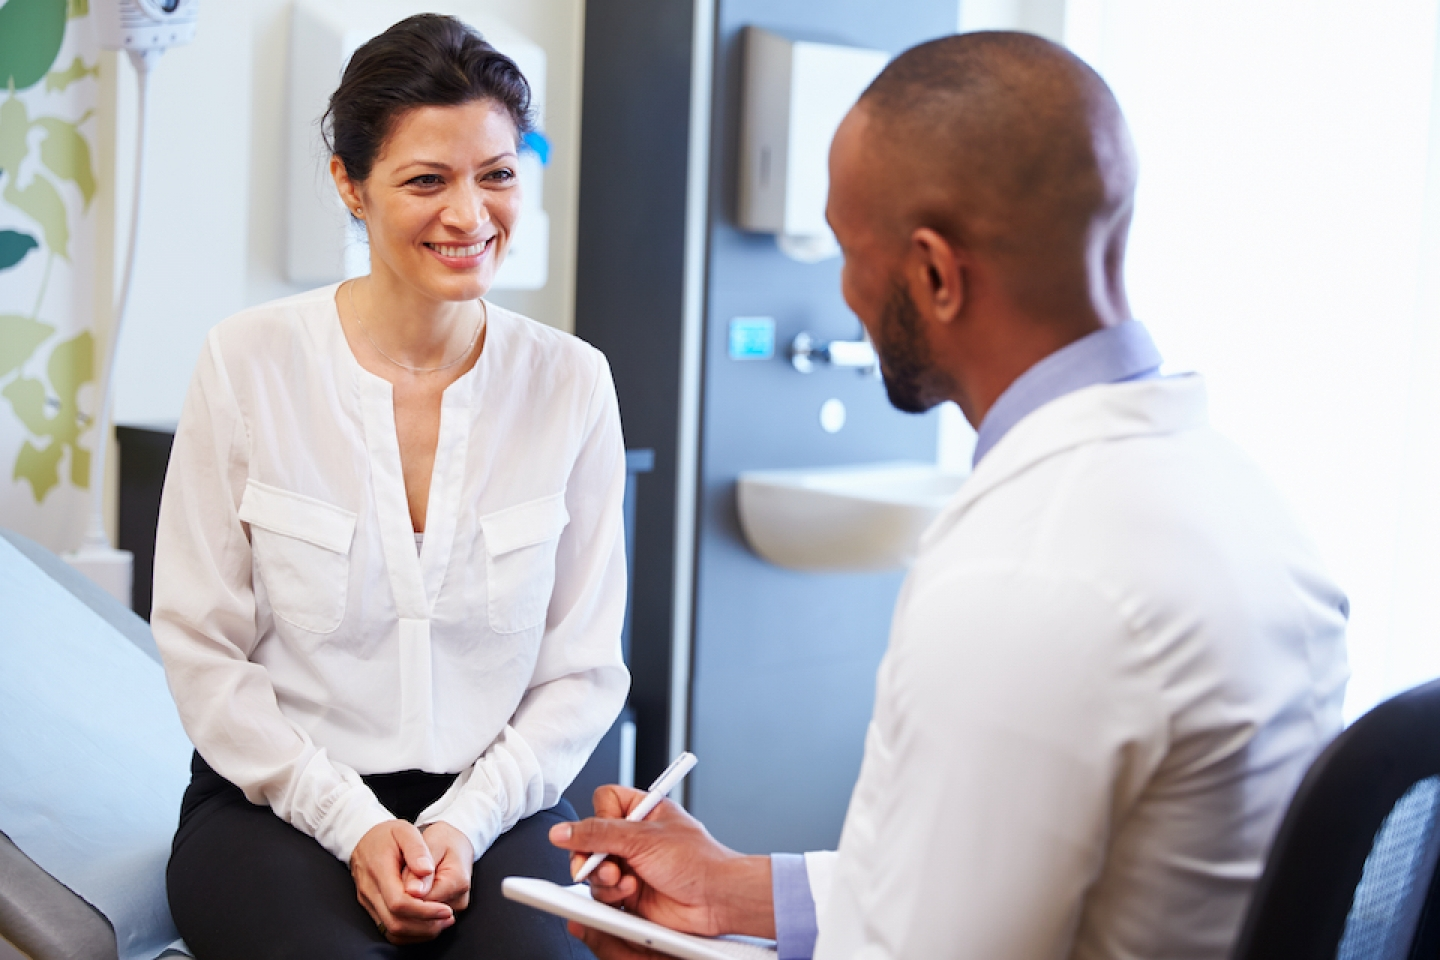 woman consults with doctor